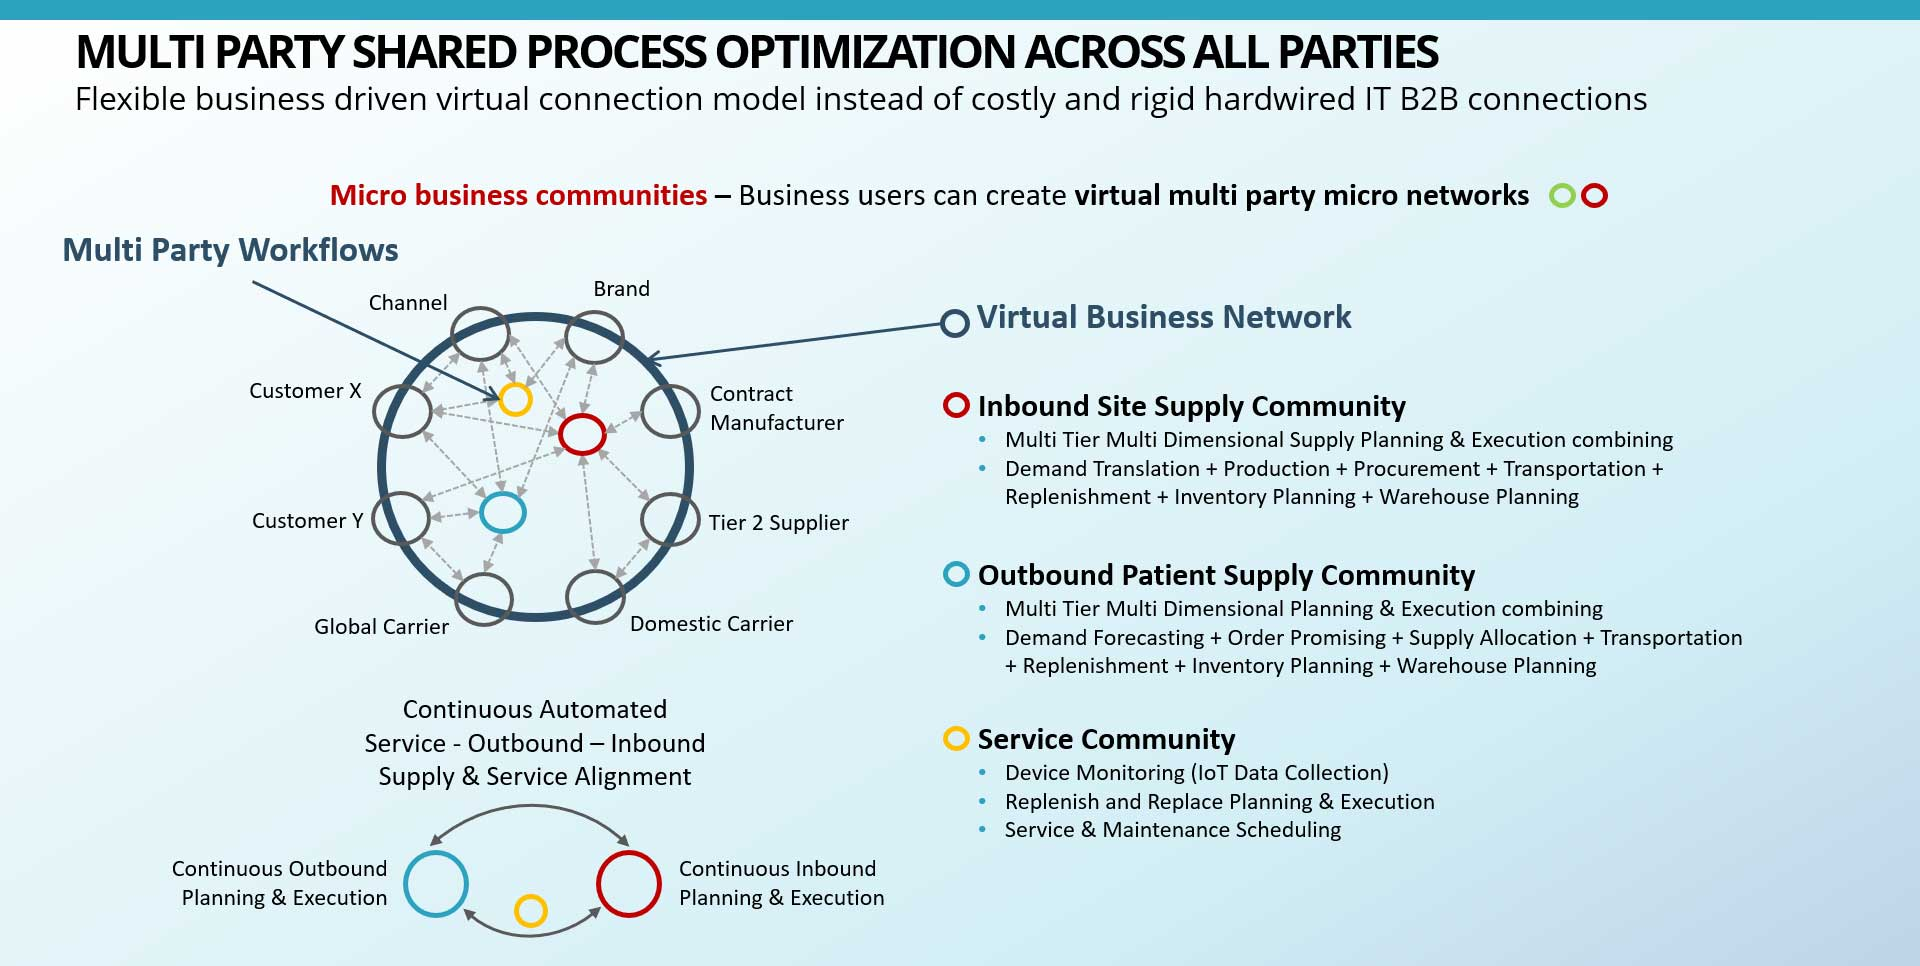 Multi-Party Shared Business Processes